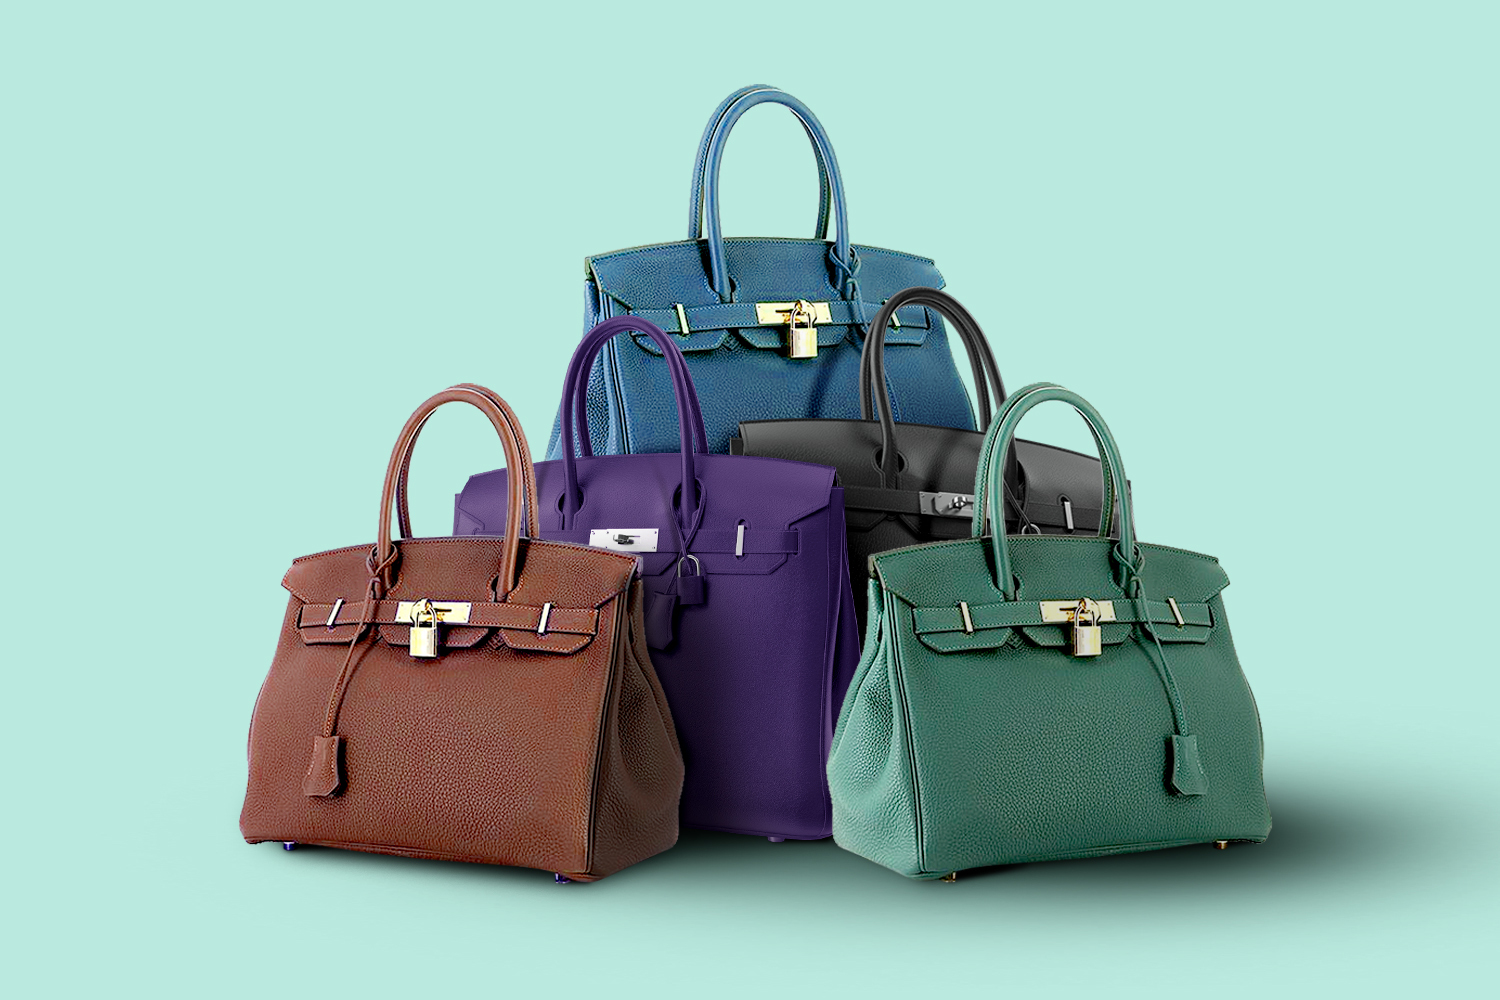 How Hermès Returned to Growth in Q3